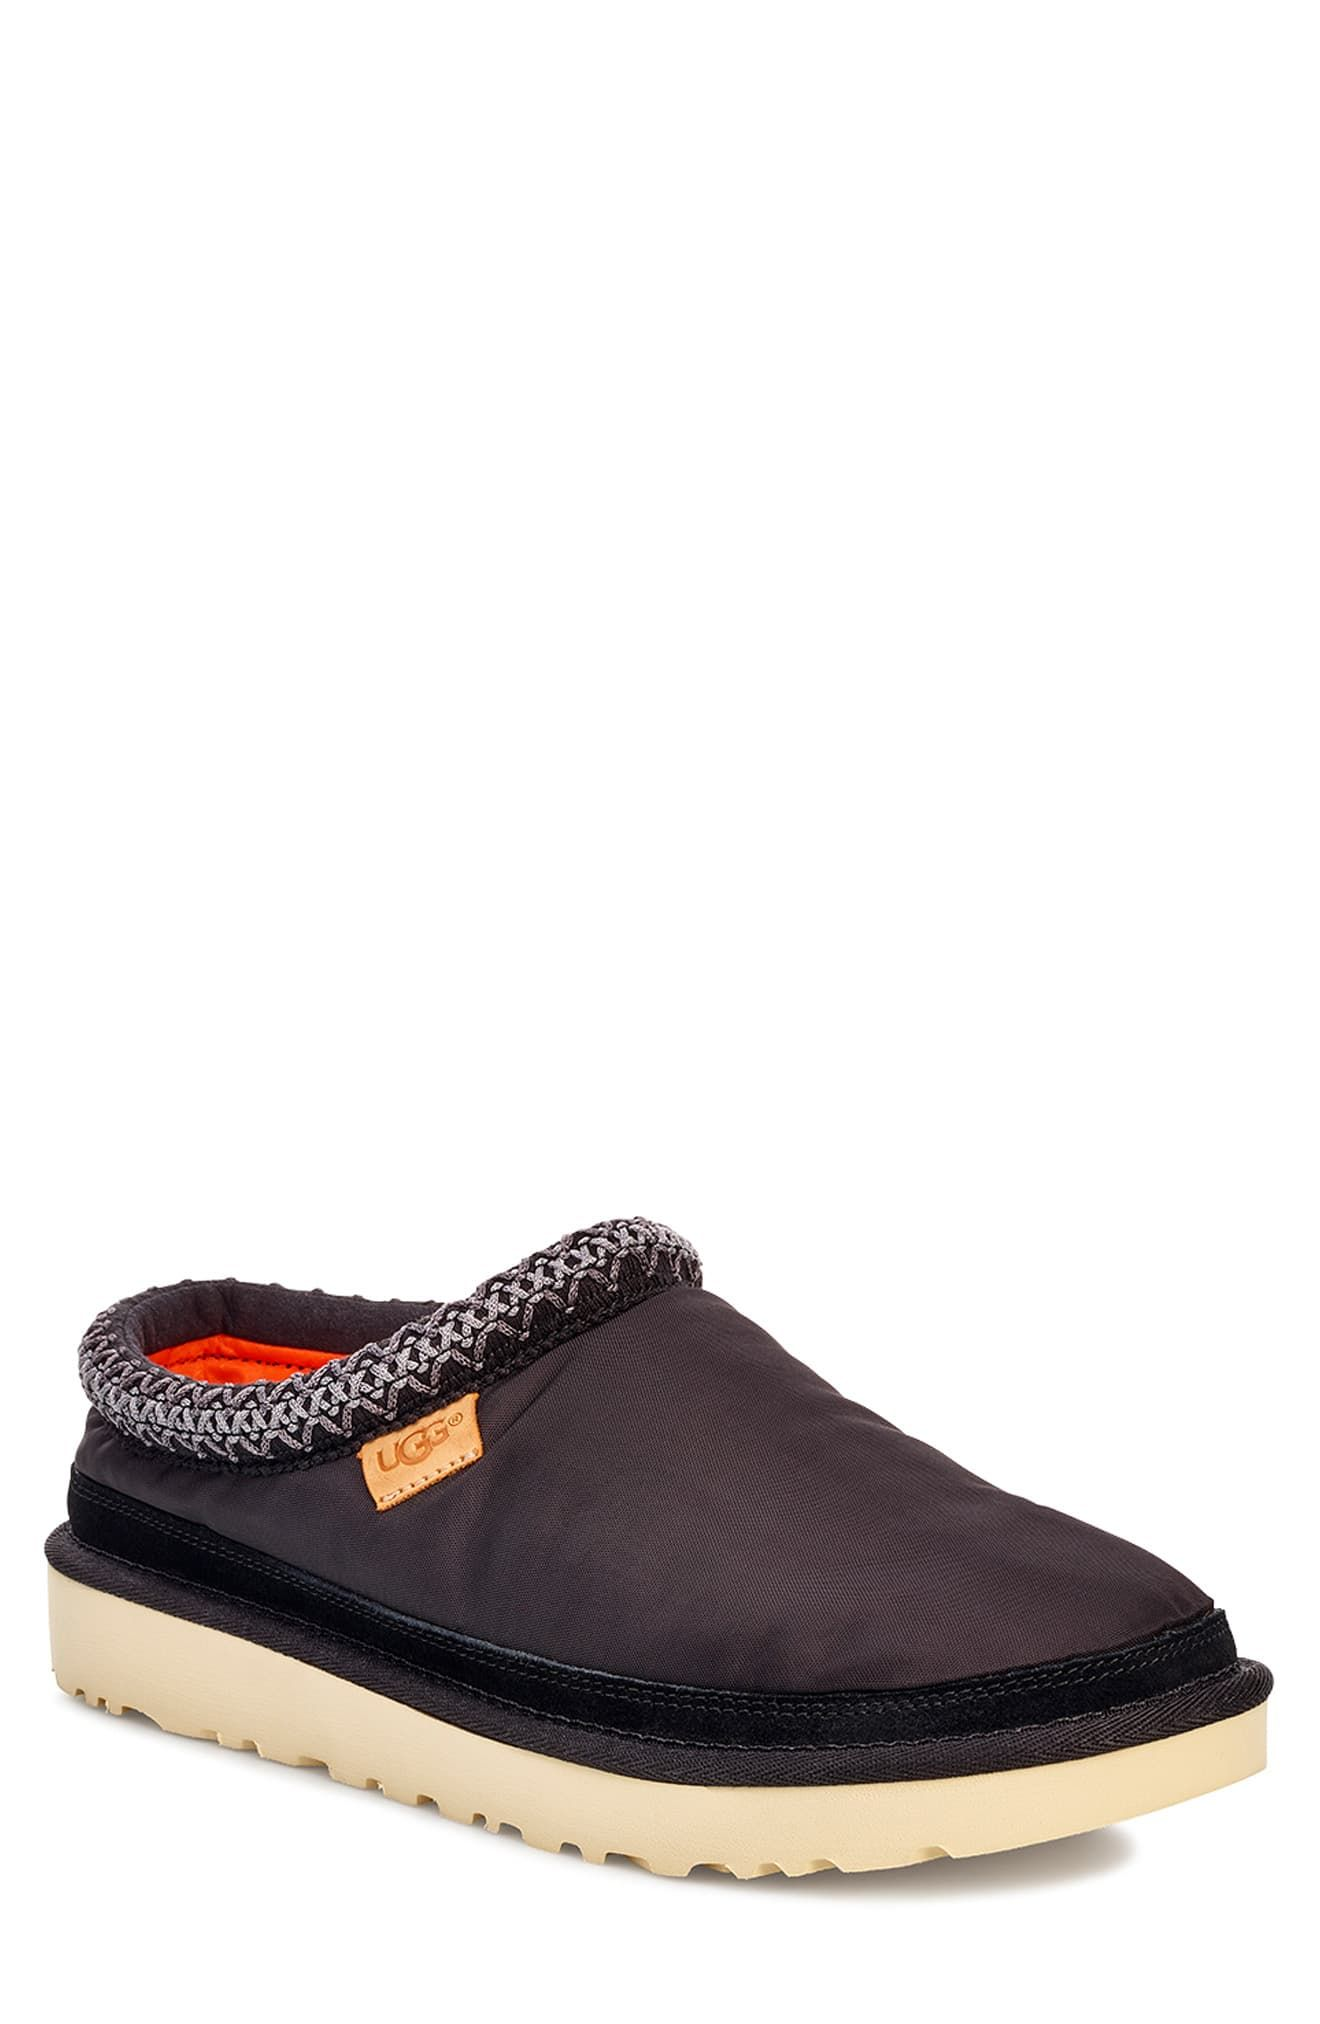 4739aac8a3a Men's Ugg Tasman Slipper, Size 7 M - Black in 2019 | Products | Uggs ...